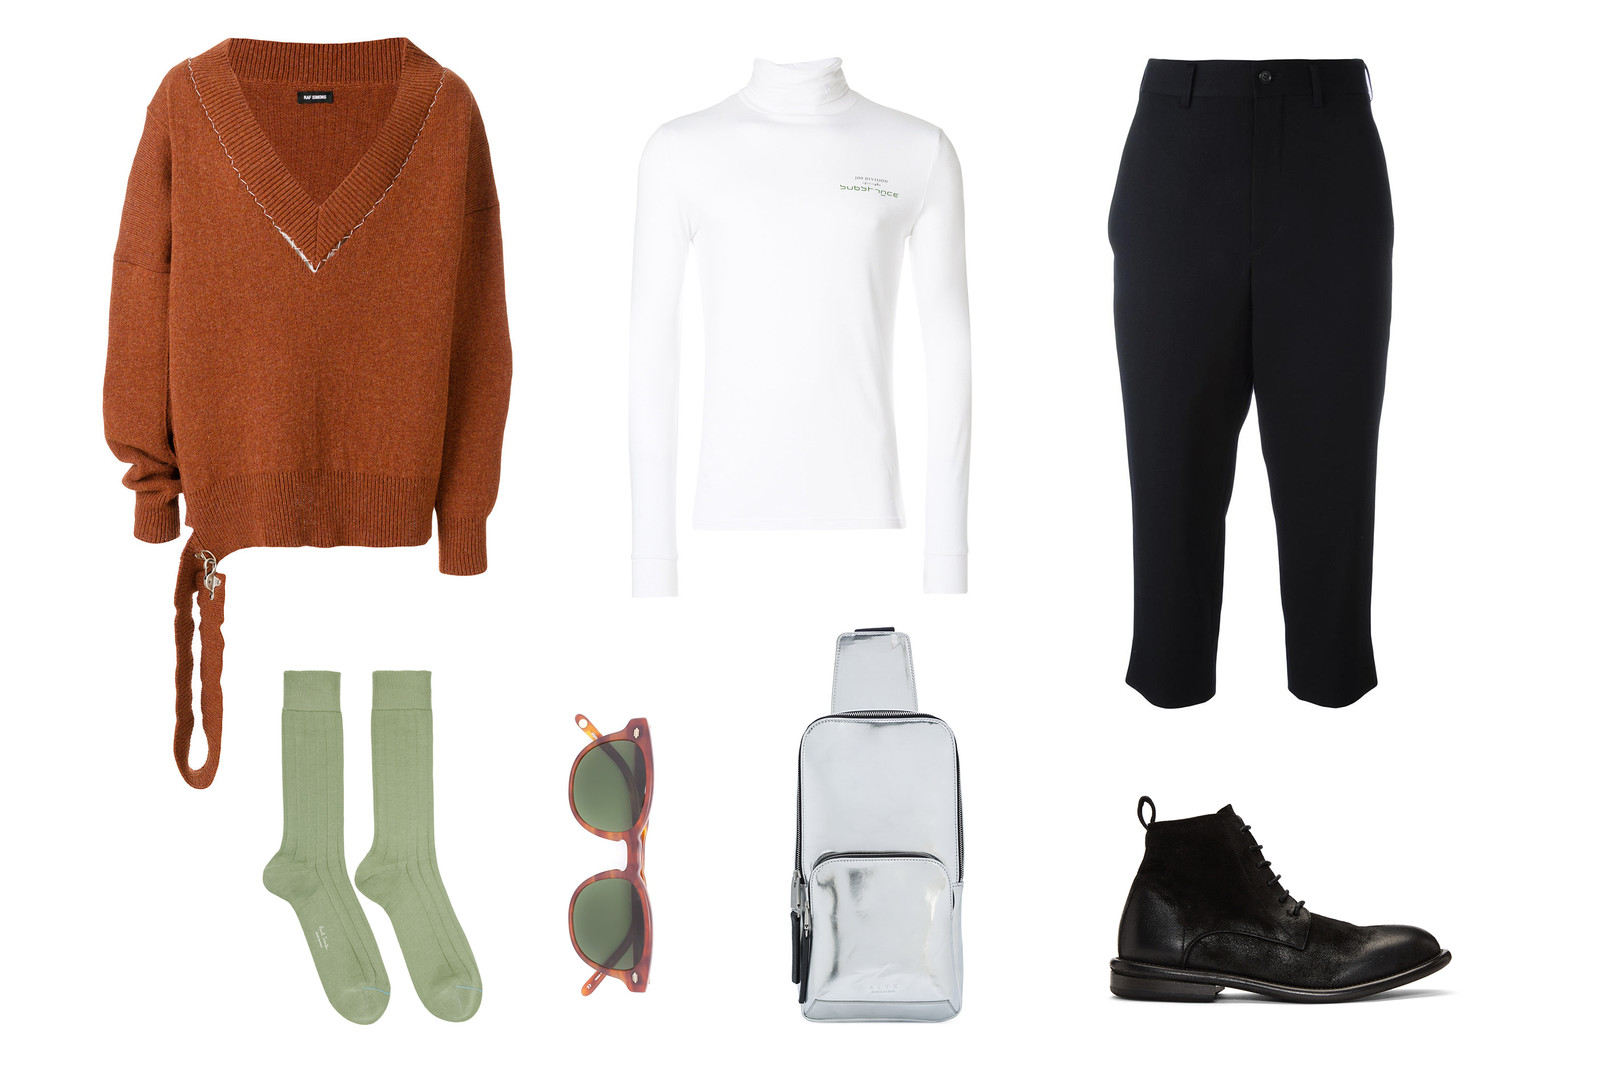 How To Wear Menswear Pieces Street Style Outfit Inspiration HYPEBAE Editors' Style Guide Looks Ideas